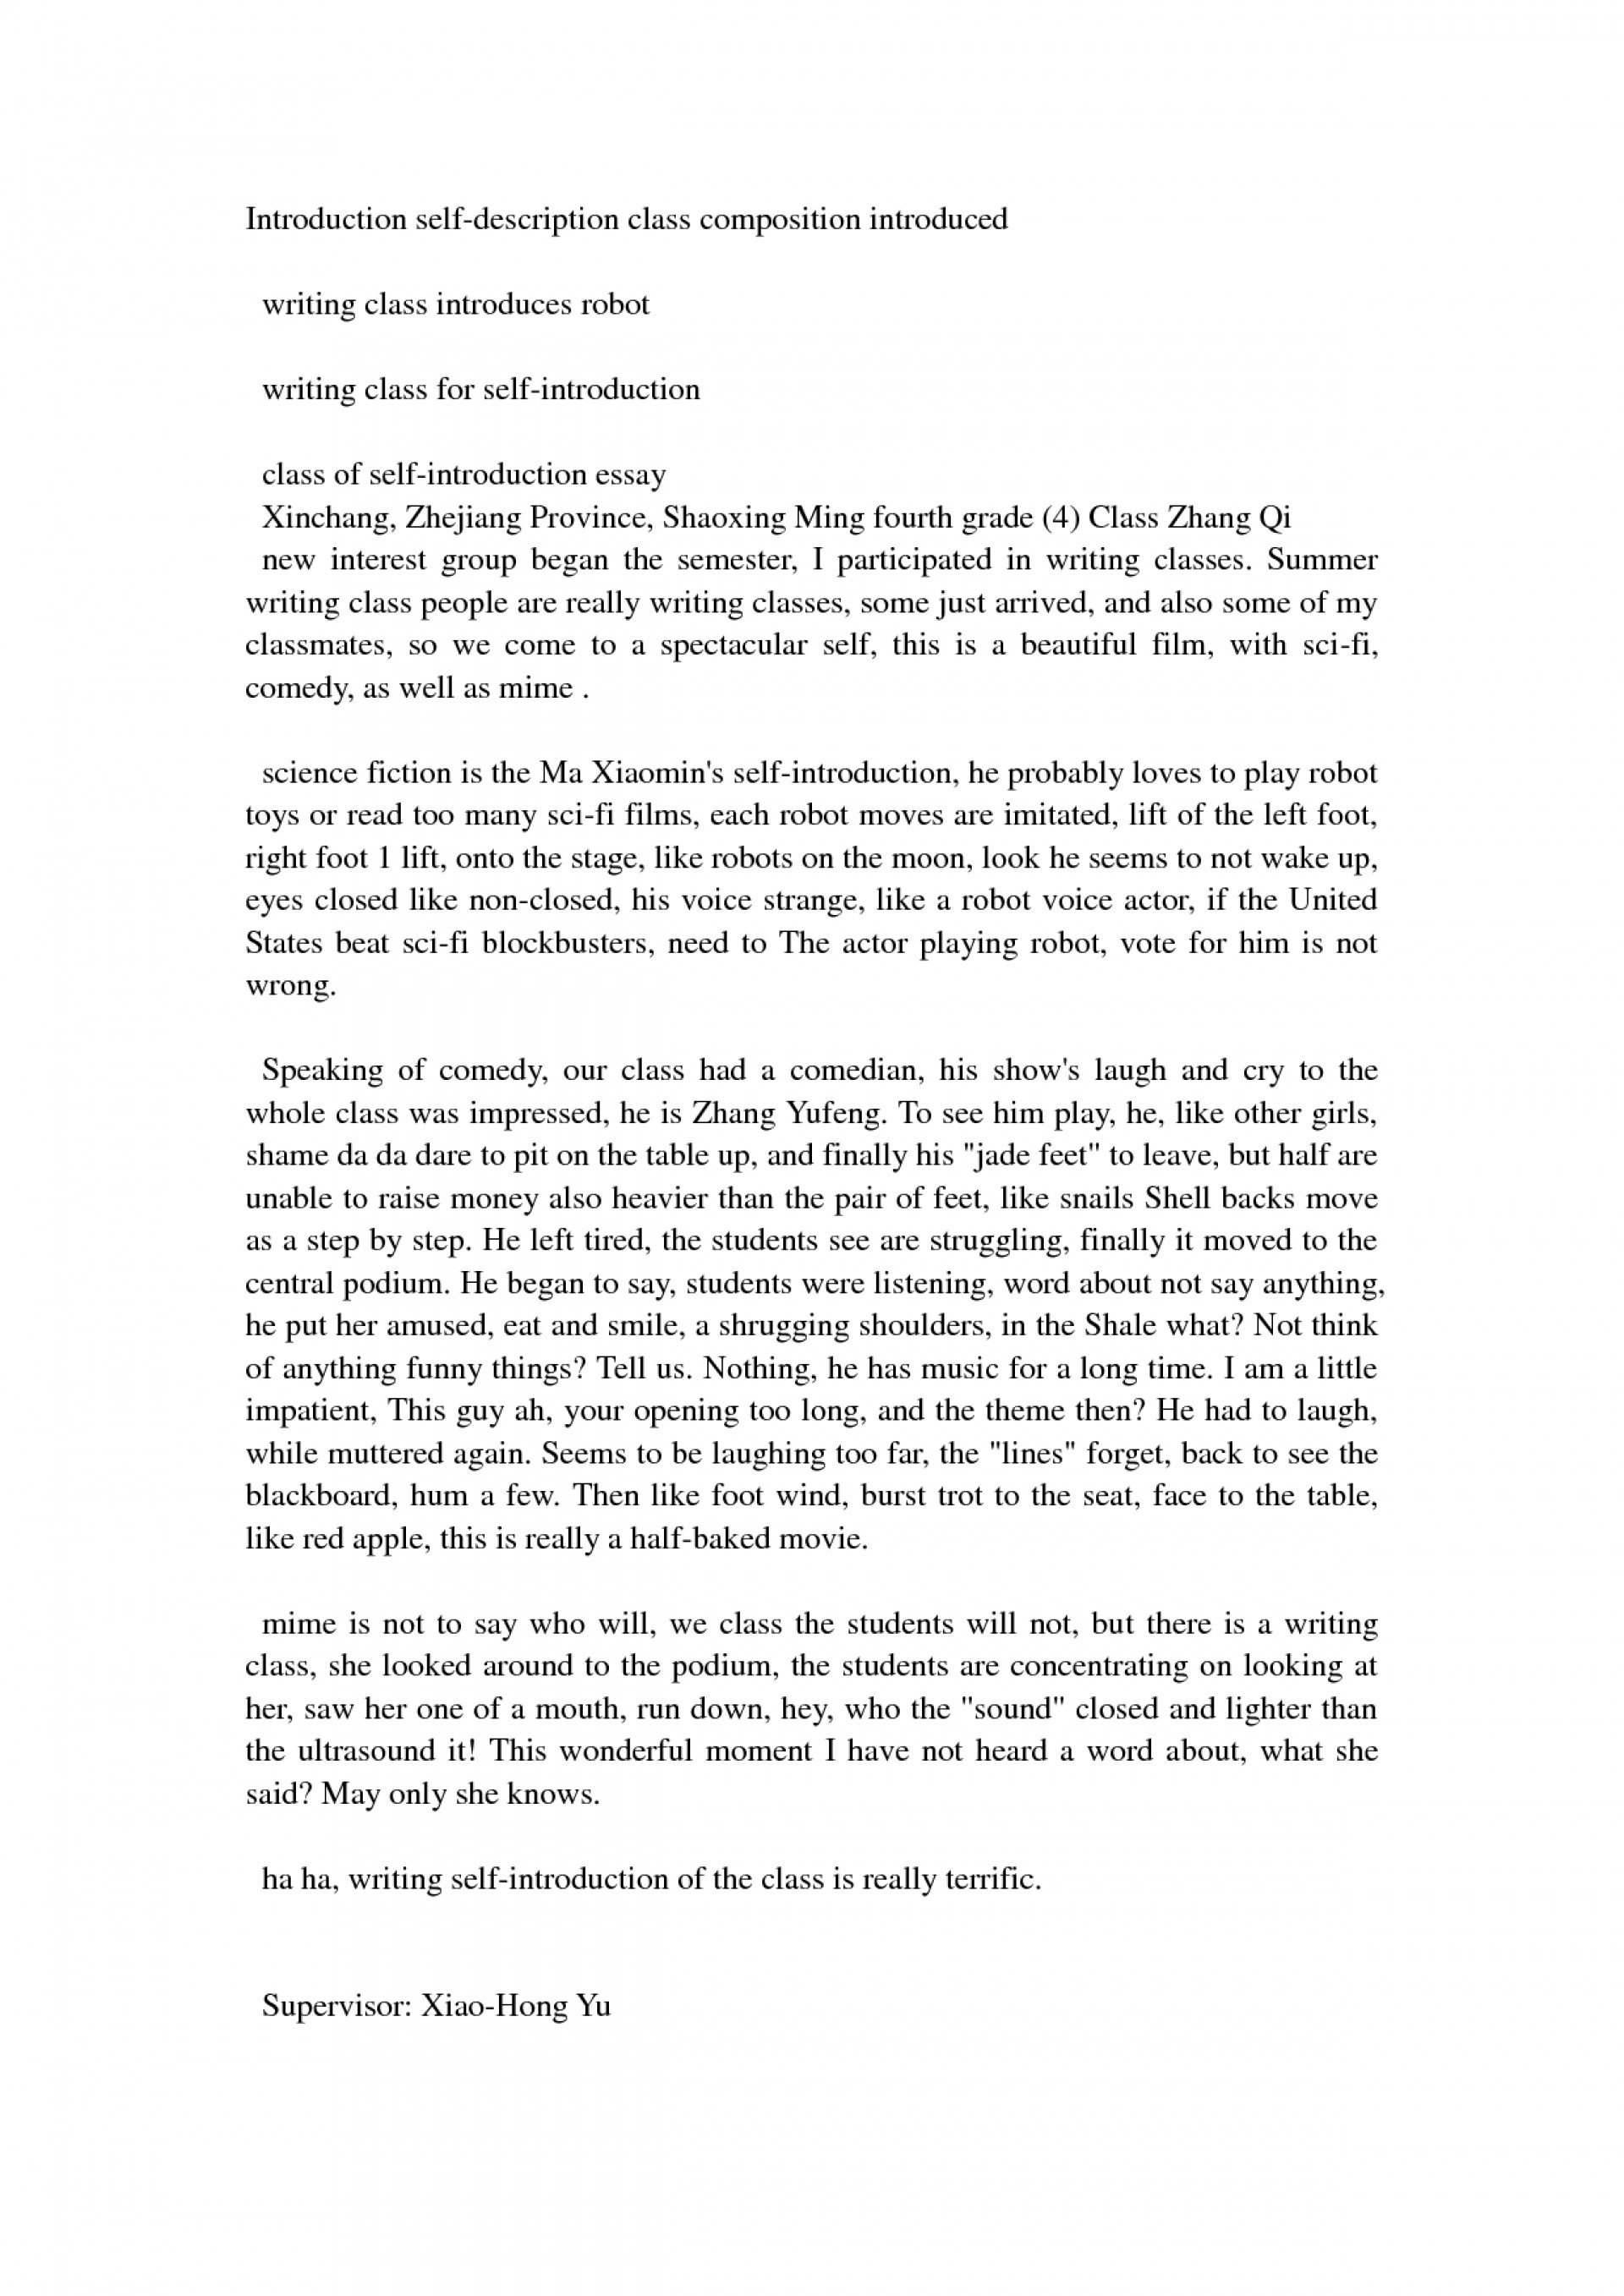 012 Self Introduction Essay Example Letter Thatsnotus